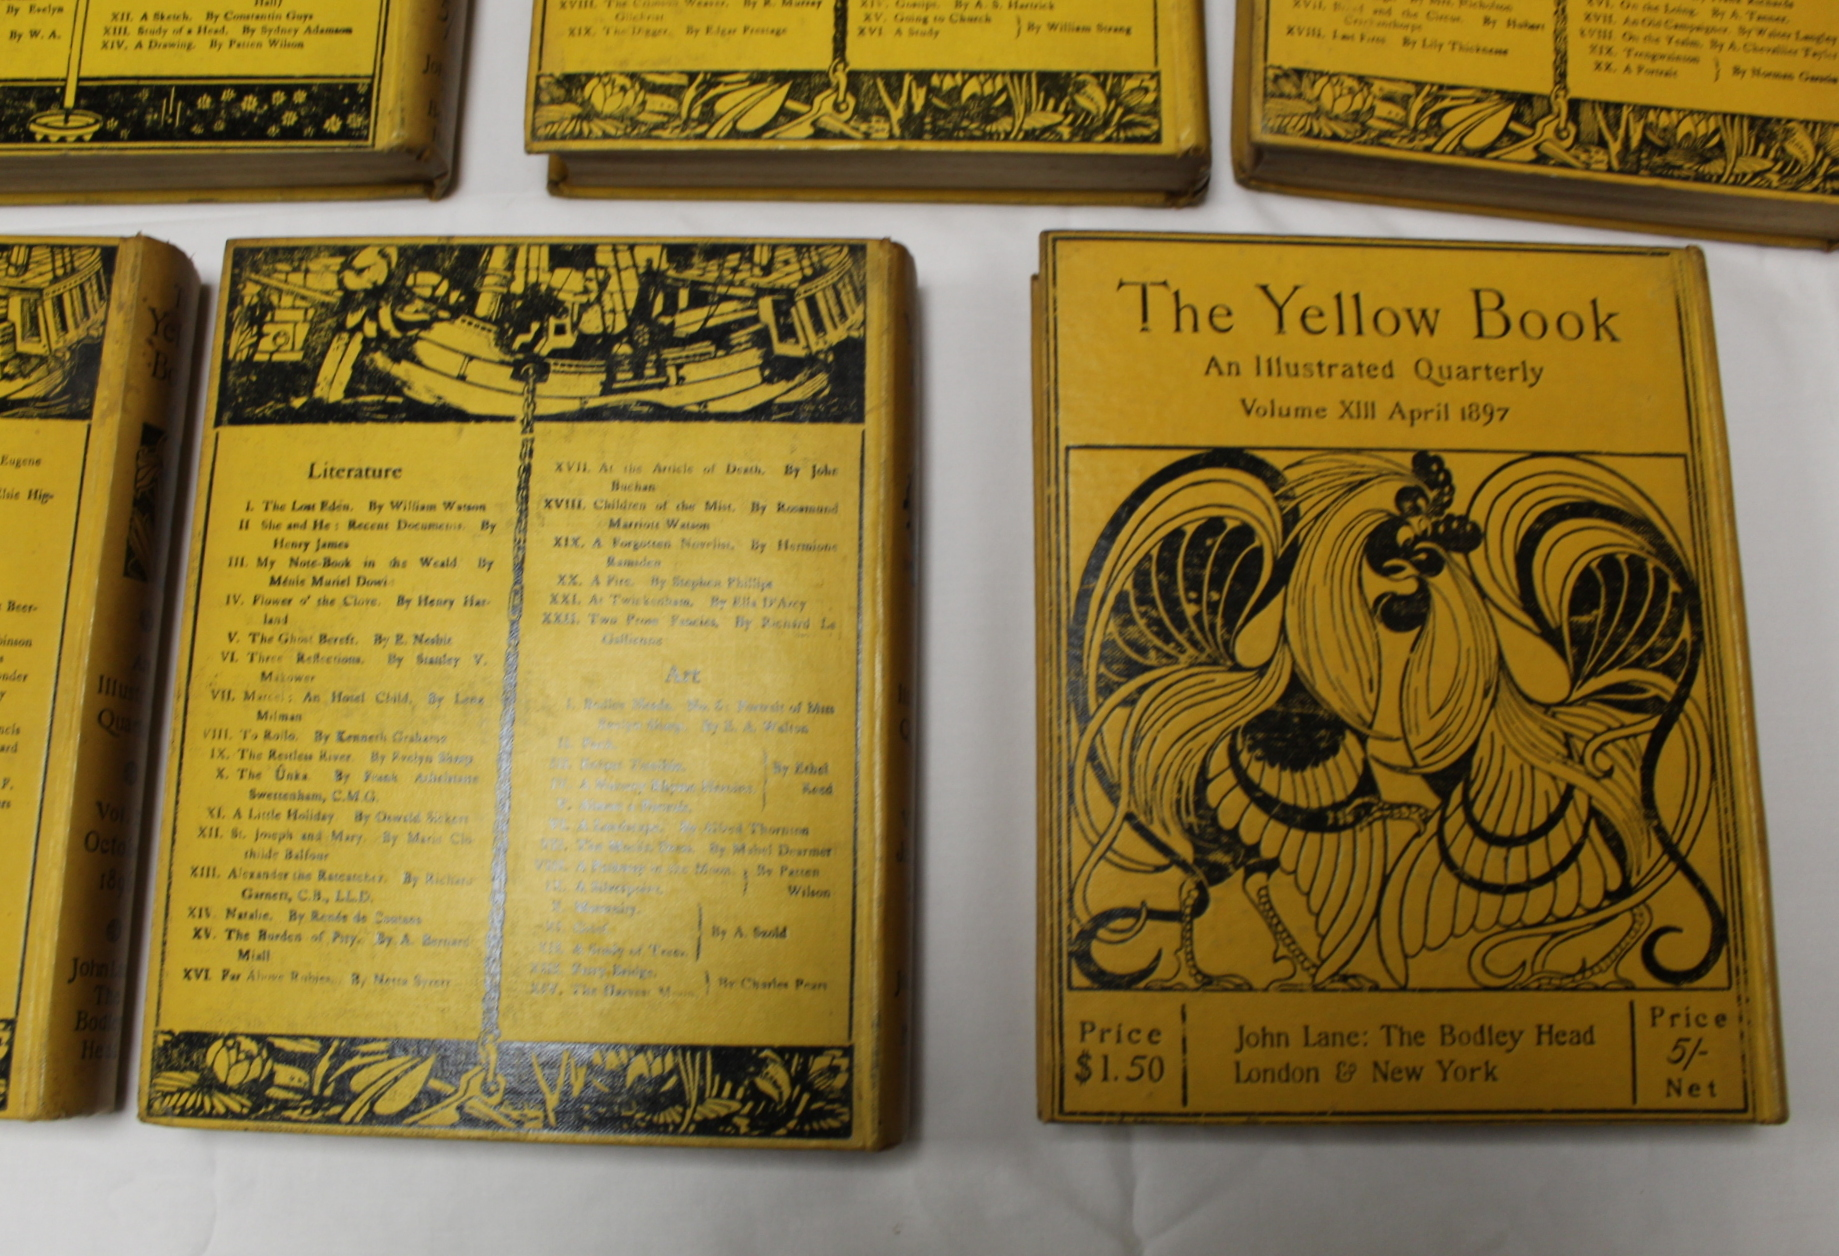 THE YELLOW BOOK.An Illustrated Quarterly. A set of 13 vols., many fine illus. Small quarto. - Image 40 of 45